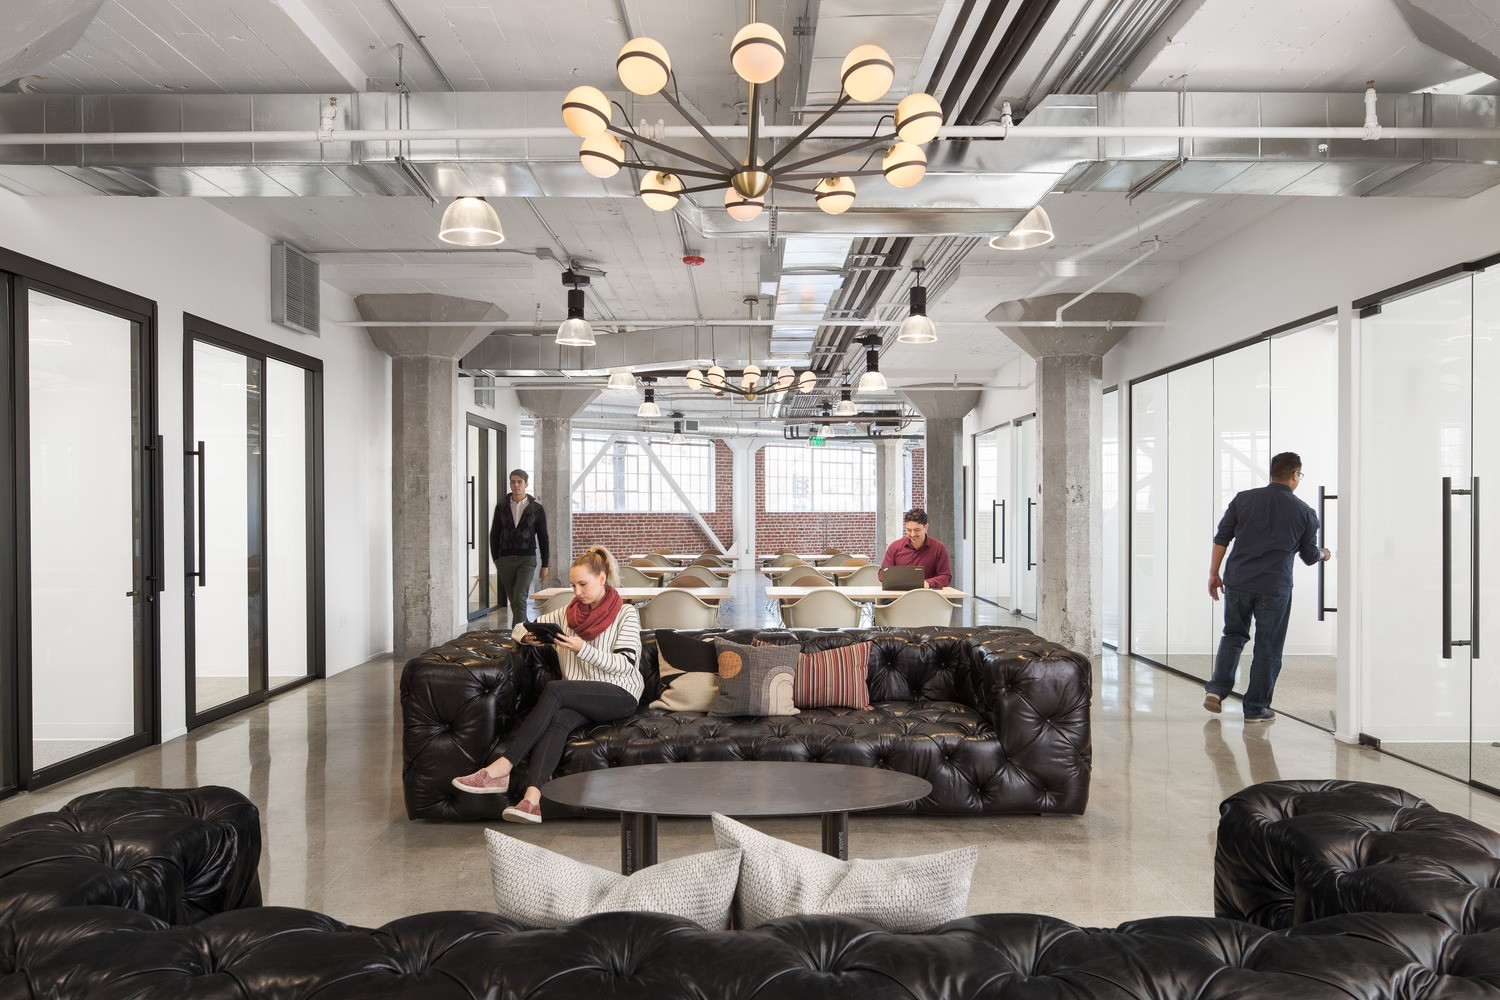 Reimagining The Cannery As Dynamic Urban Campus In ...